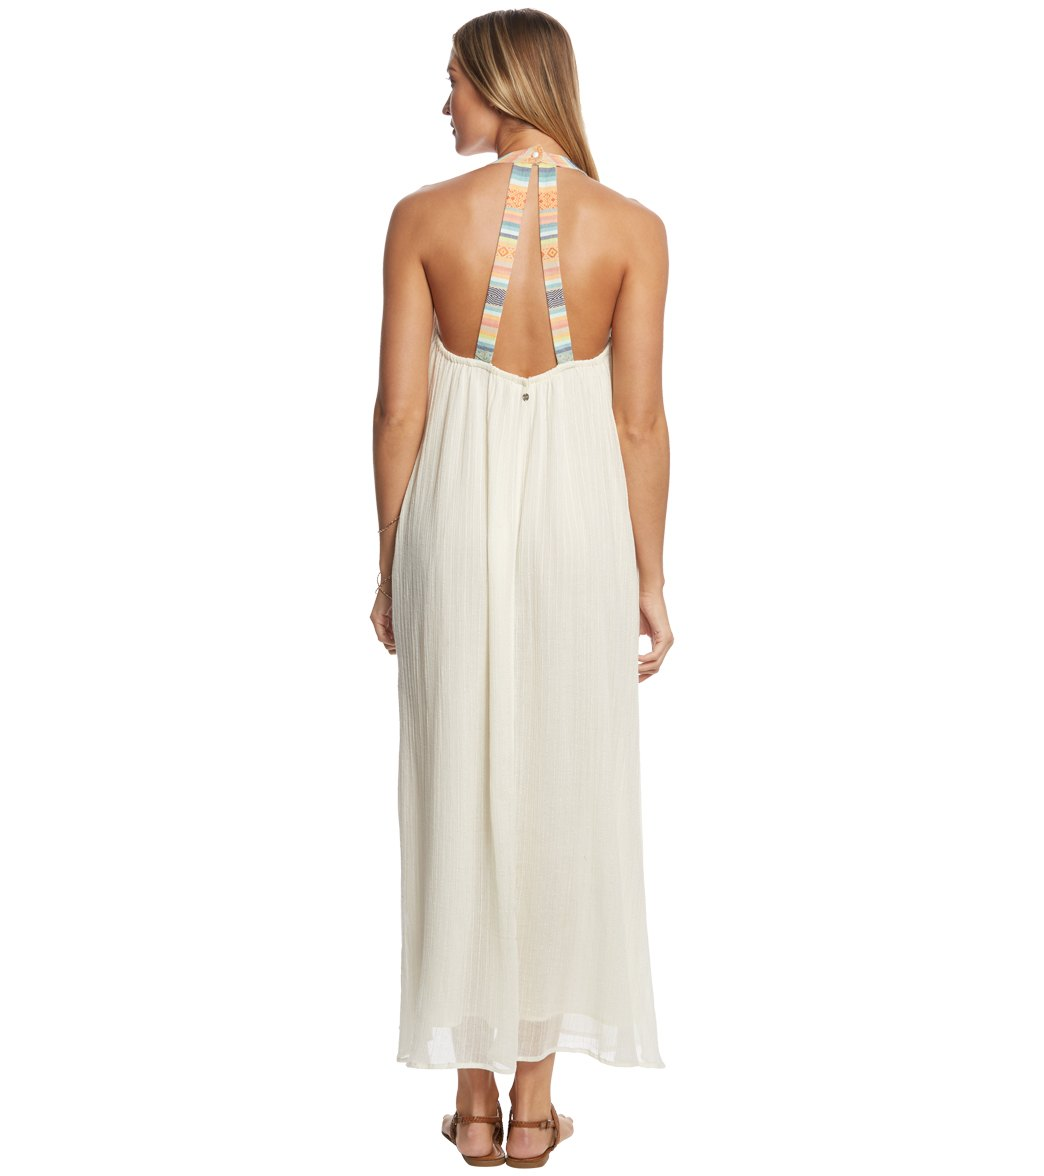 Rip Curl Sun Gypsy Maxi Dress at SwimOutlet.com - Free Shipping